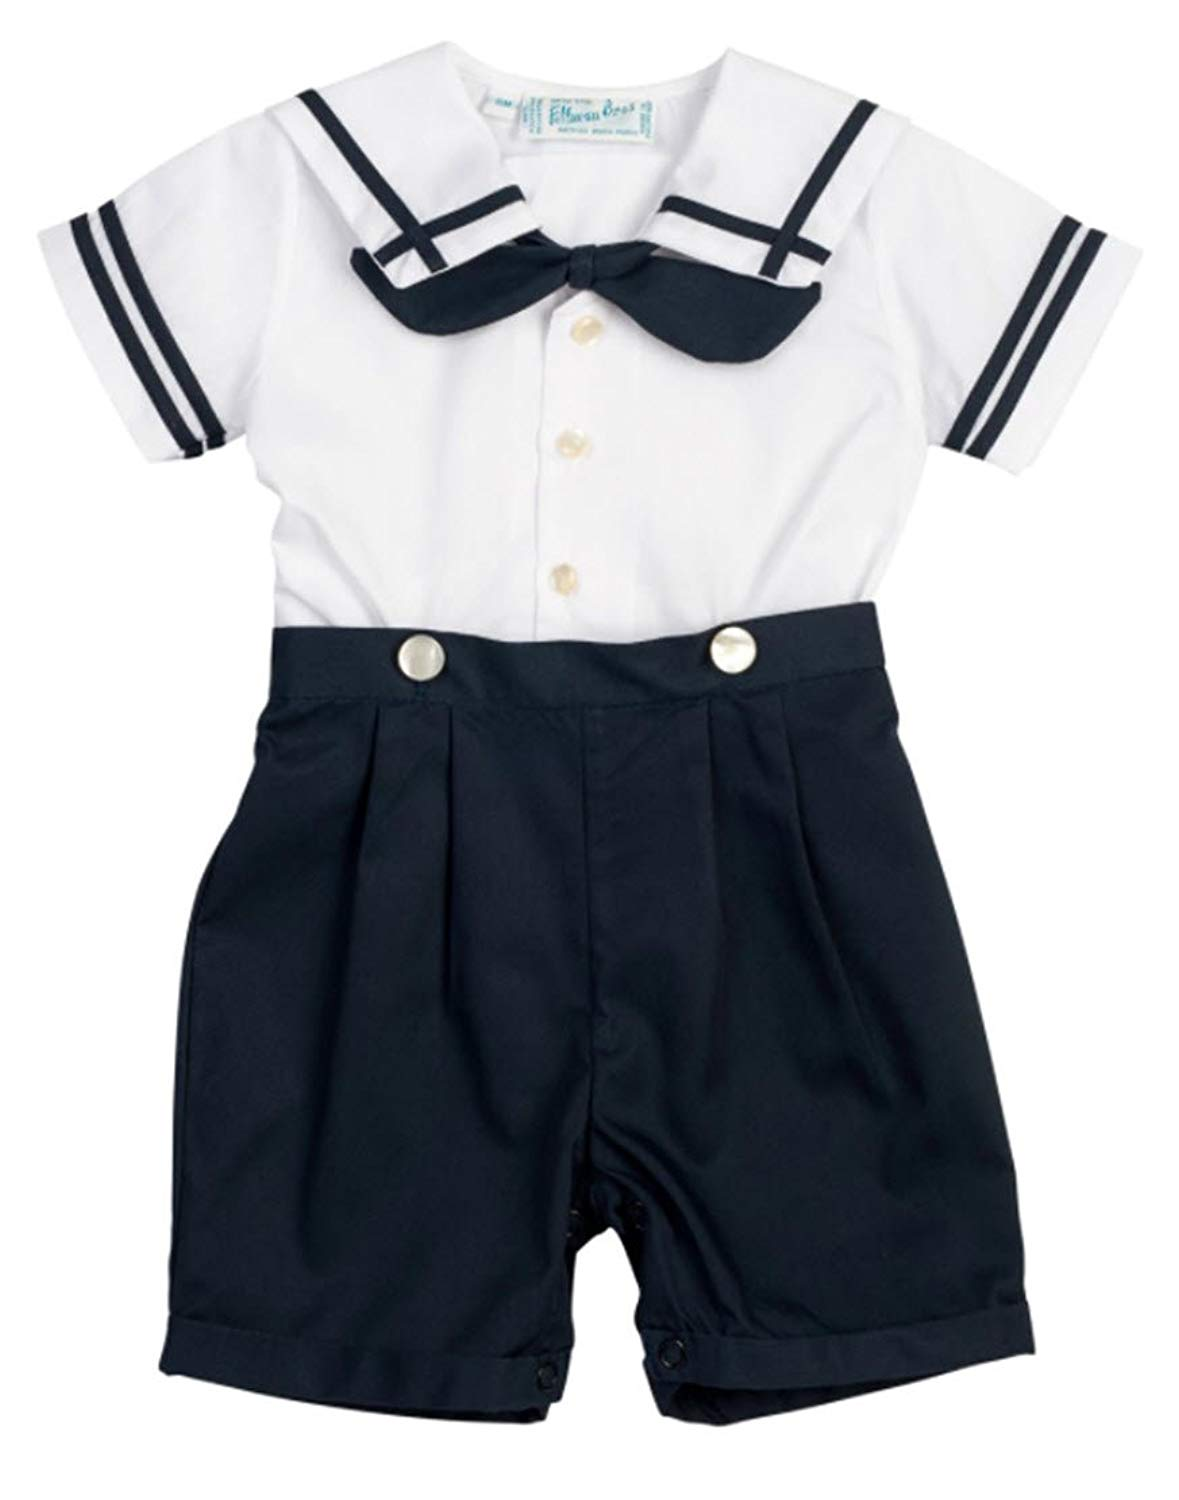 326cec708 Get Quotations · Navy Blue & White Boys Sailor Suit Infant & Toddler Easter